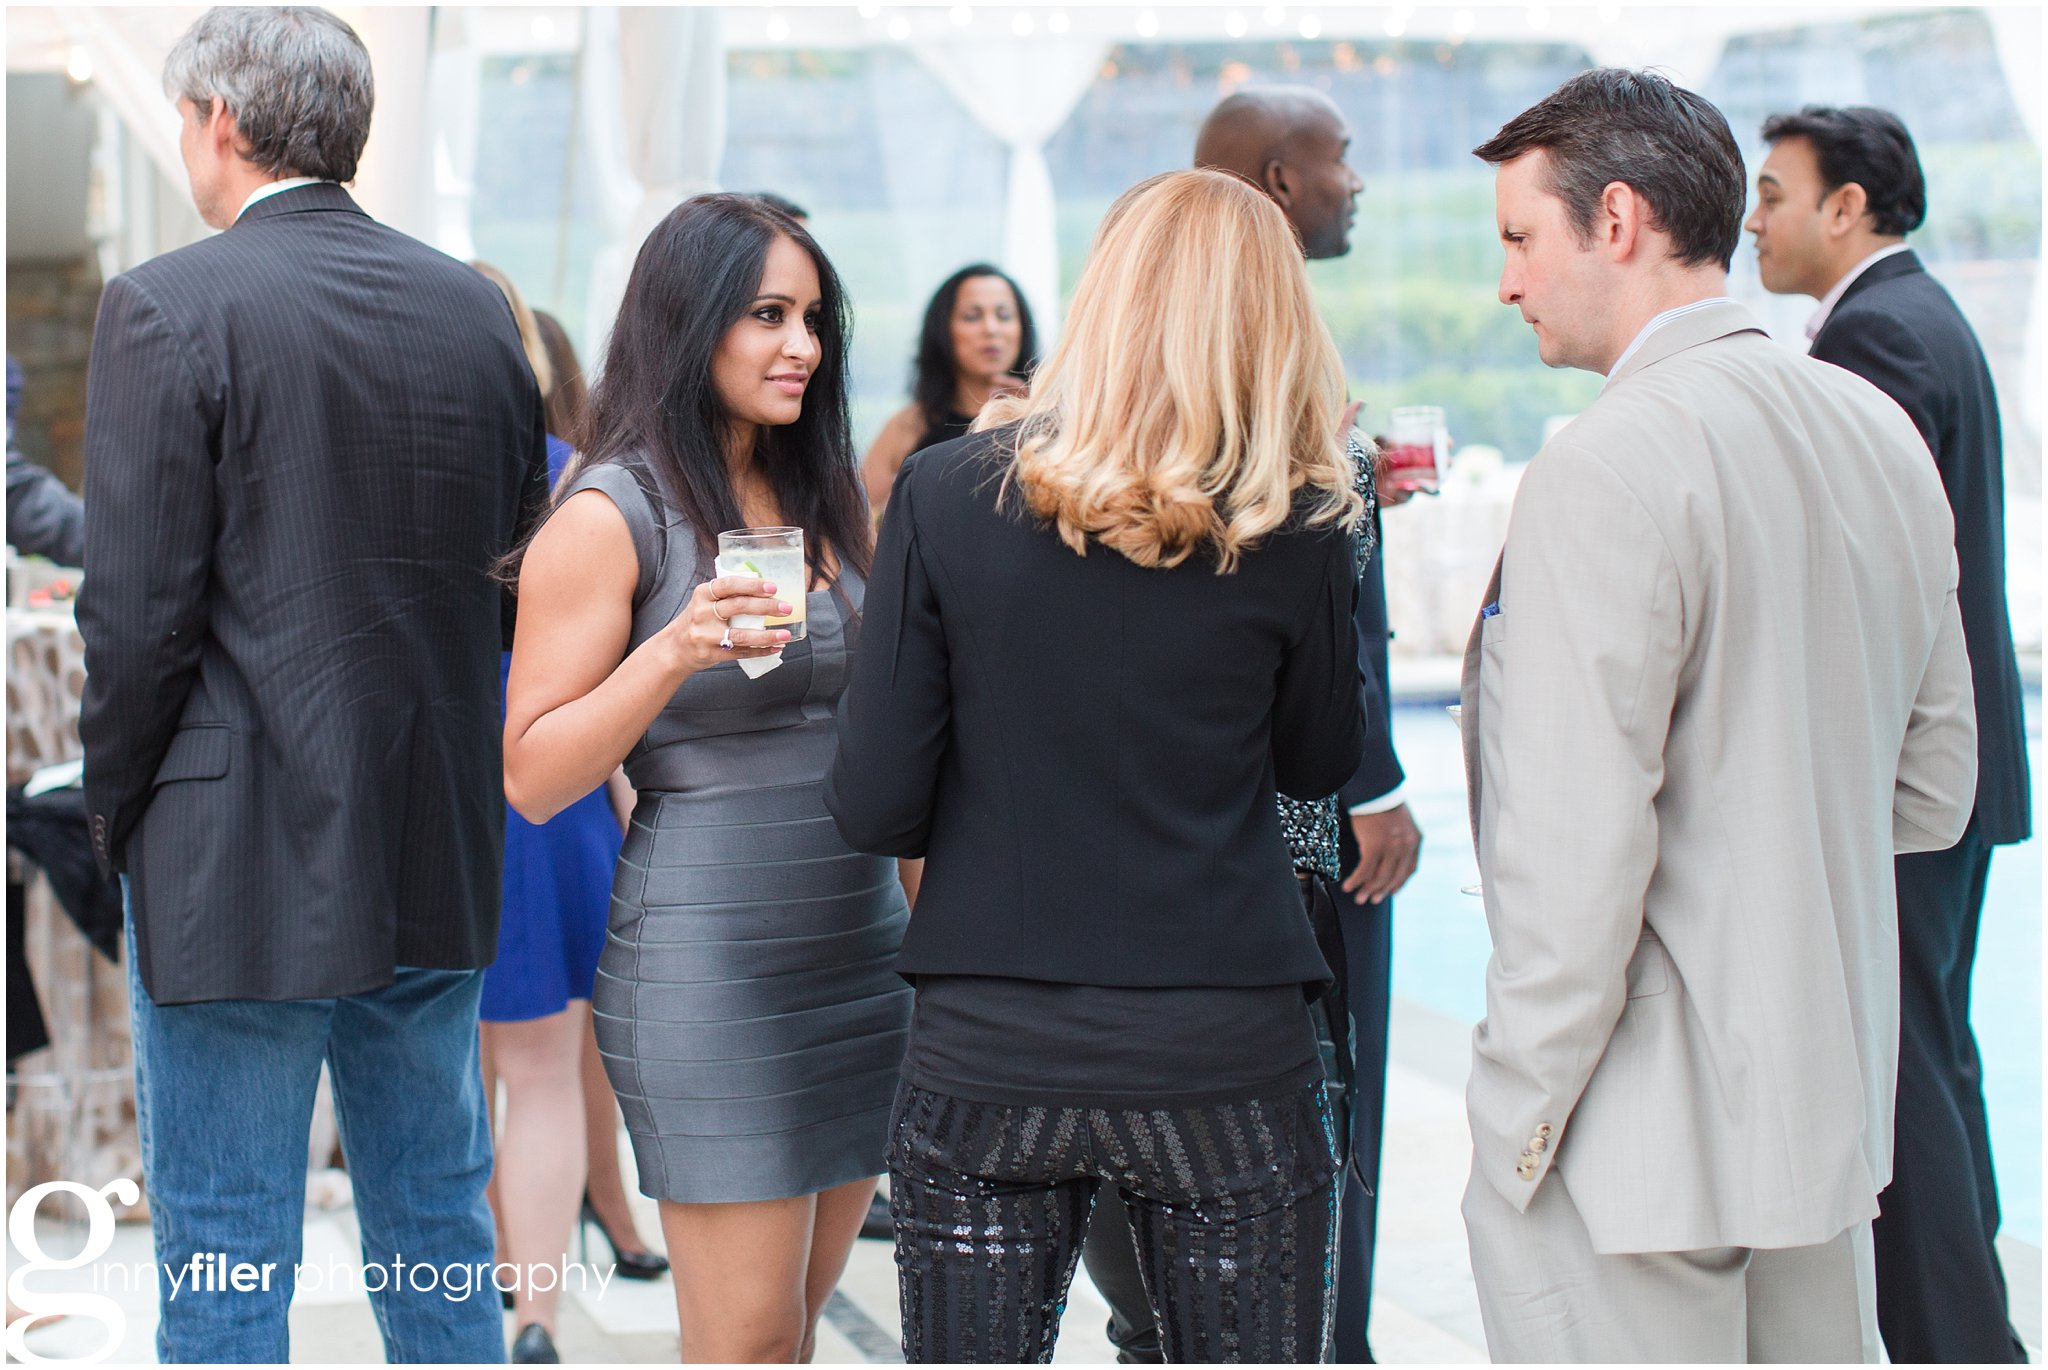 event_photography_party_0025.jpg